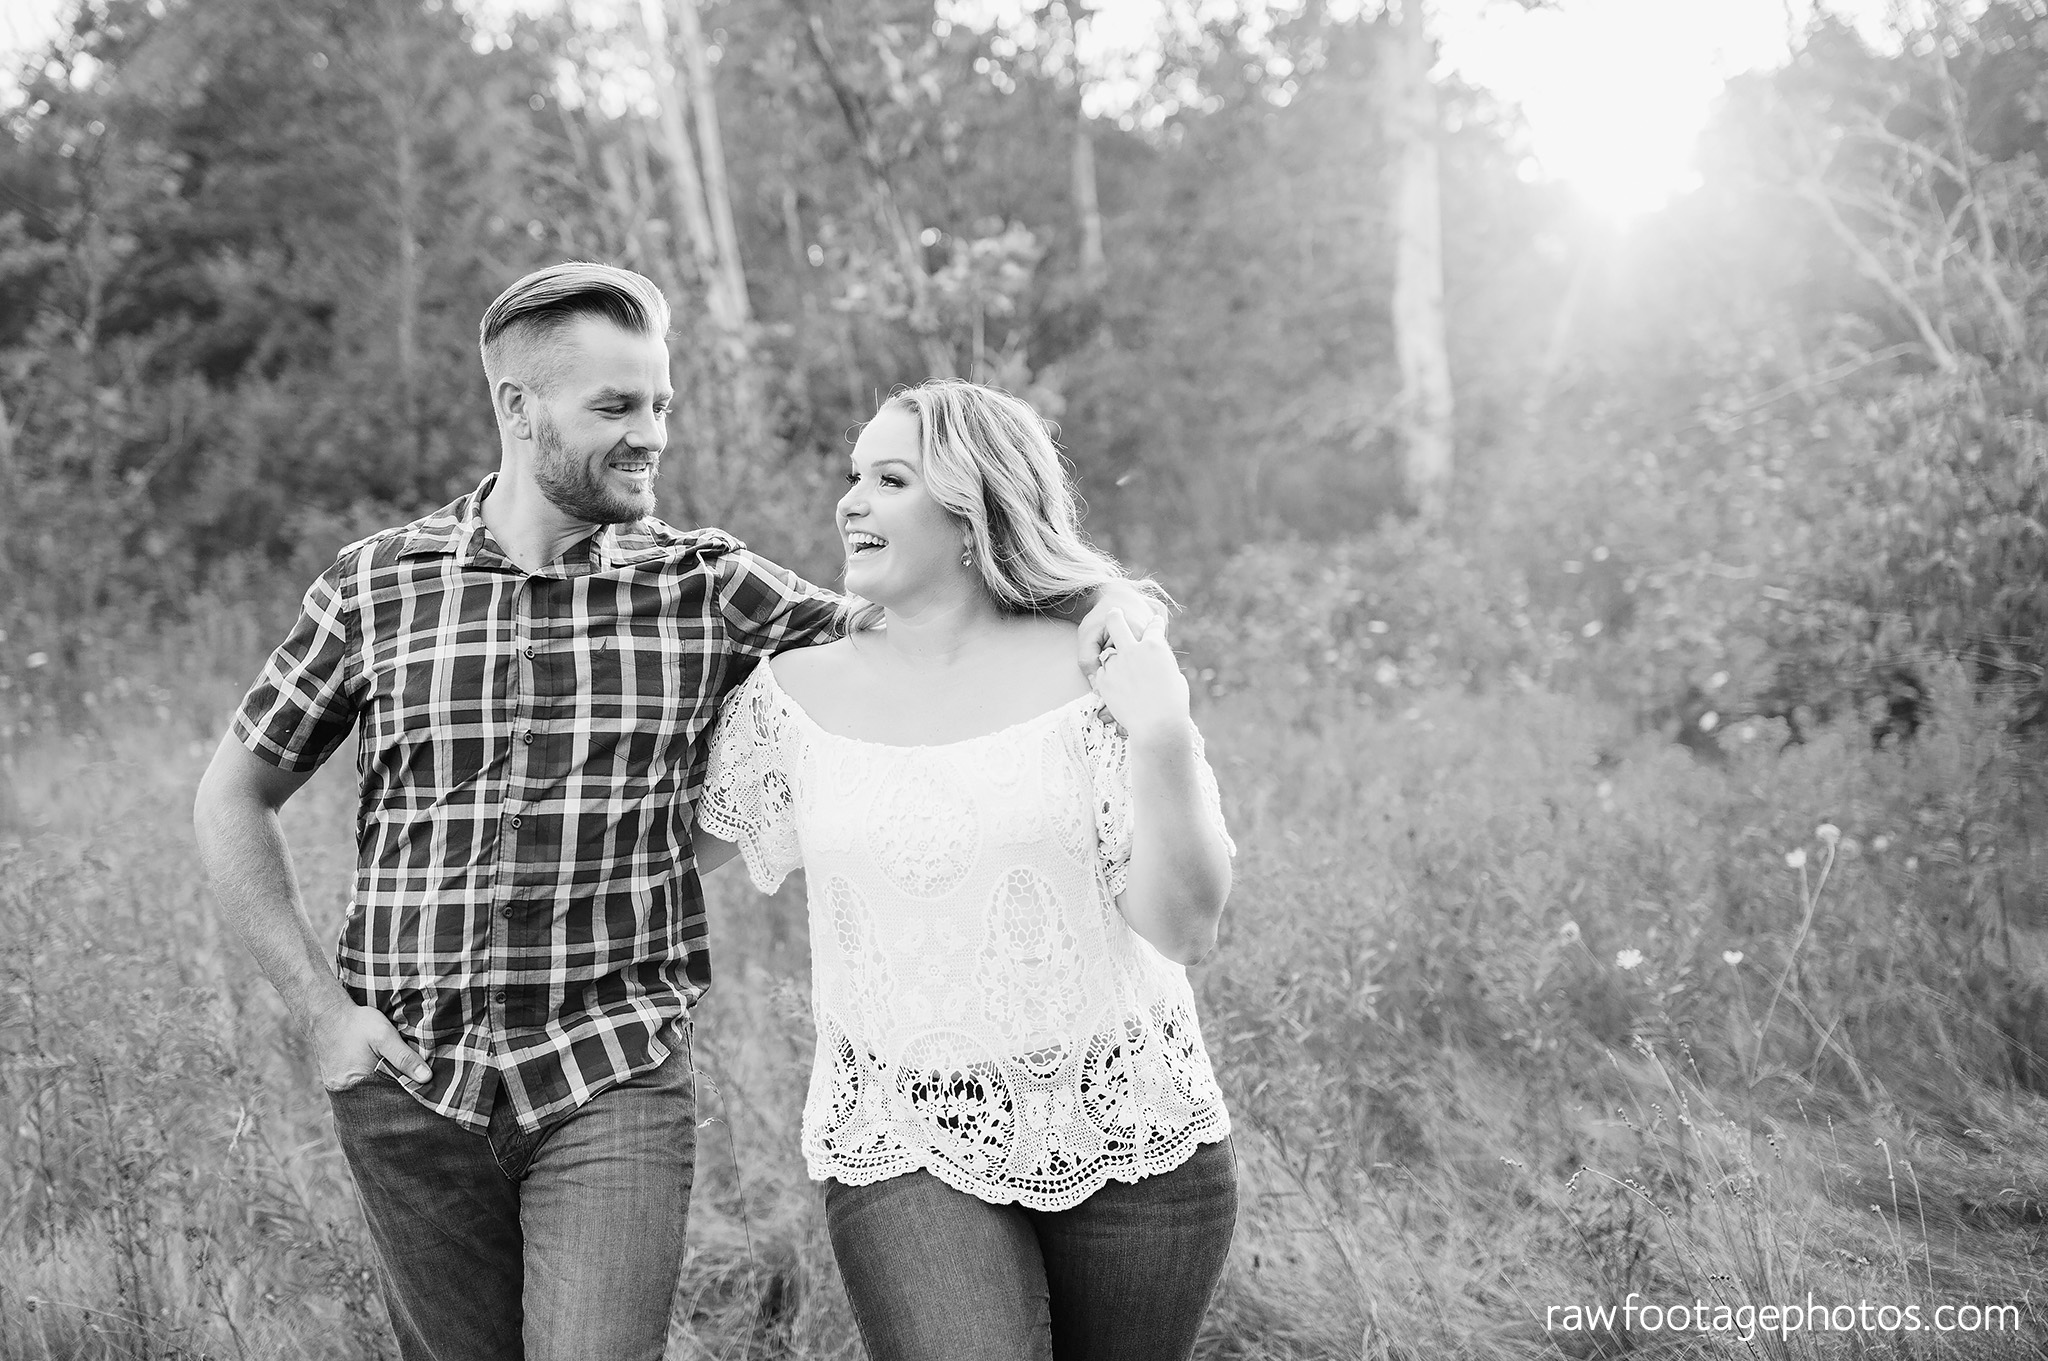 london_ontario_wedding_photographer-woodsy_engagement_session-e_session-engagement_photos-medway_creek-medway_heritage_forest-raw_forest_photography010.jpg